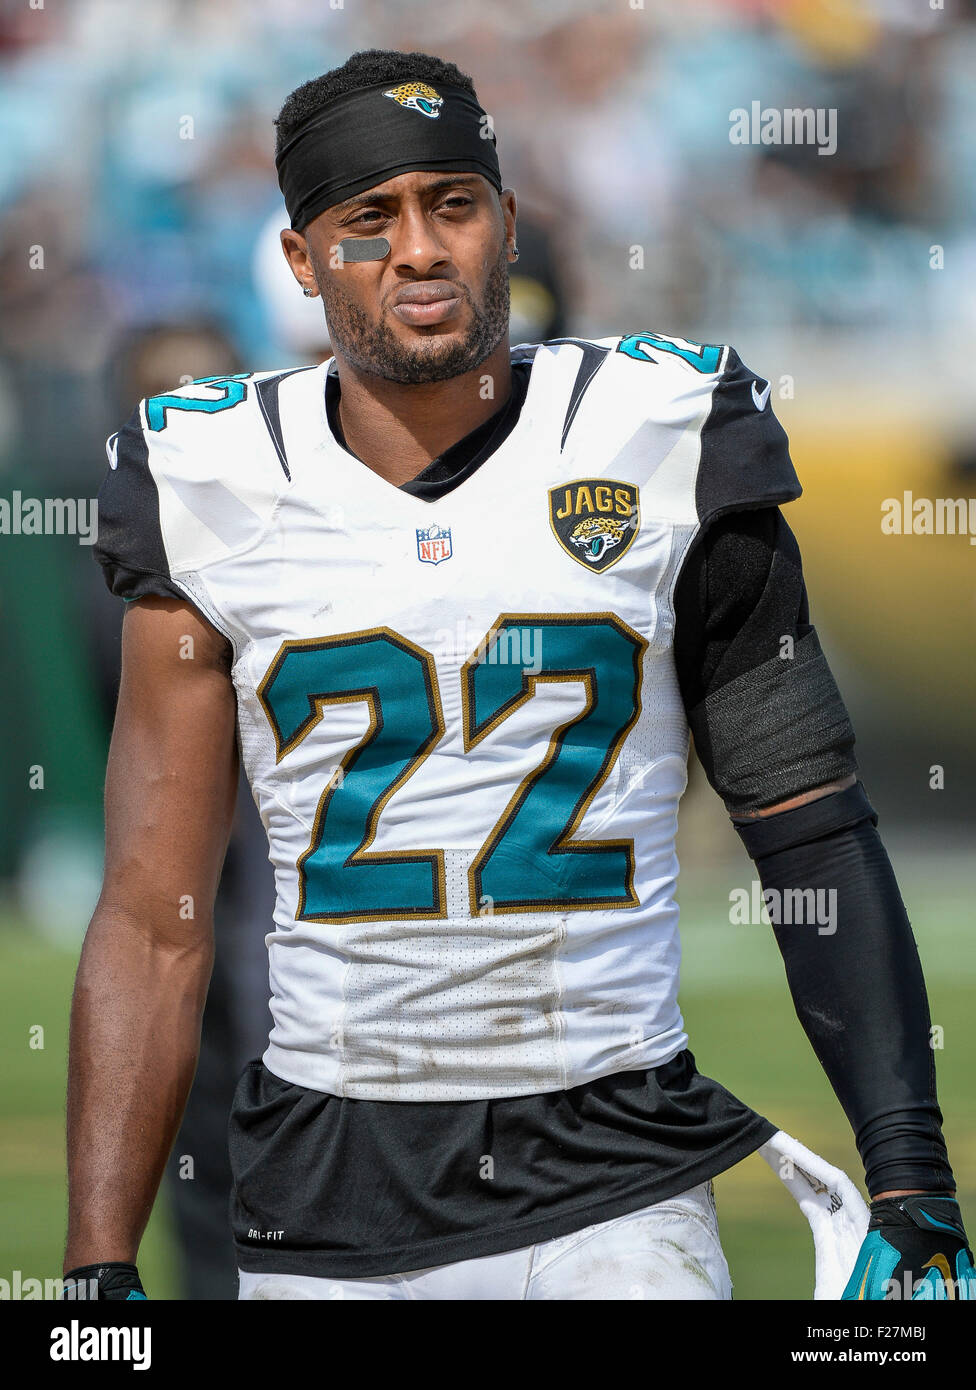 Jacksonville, FL, USA. 13th Sep, 2015. Jaguars cornerback Aaron Colvin (22) as seen during 2nd half NFL game action - Stock Image